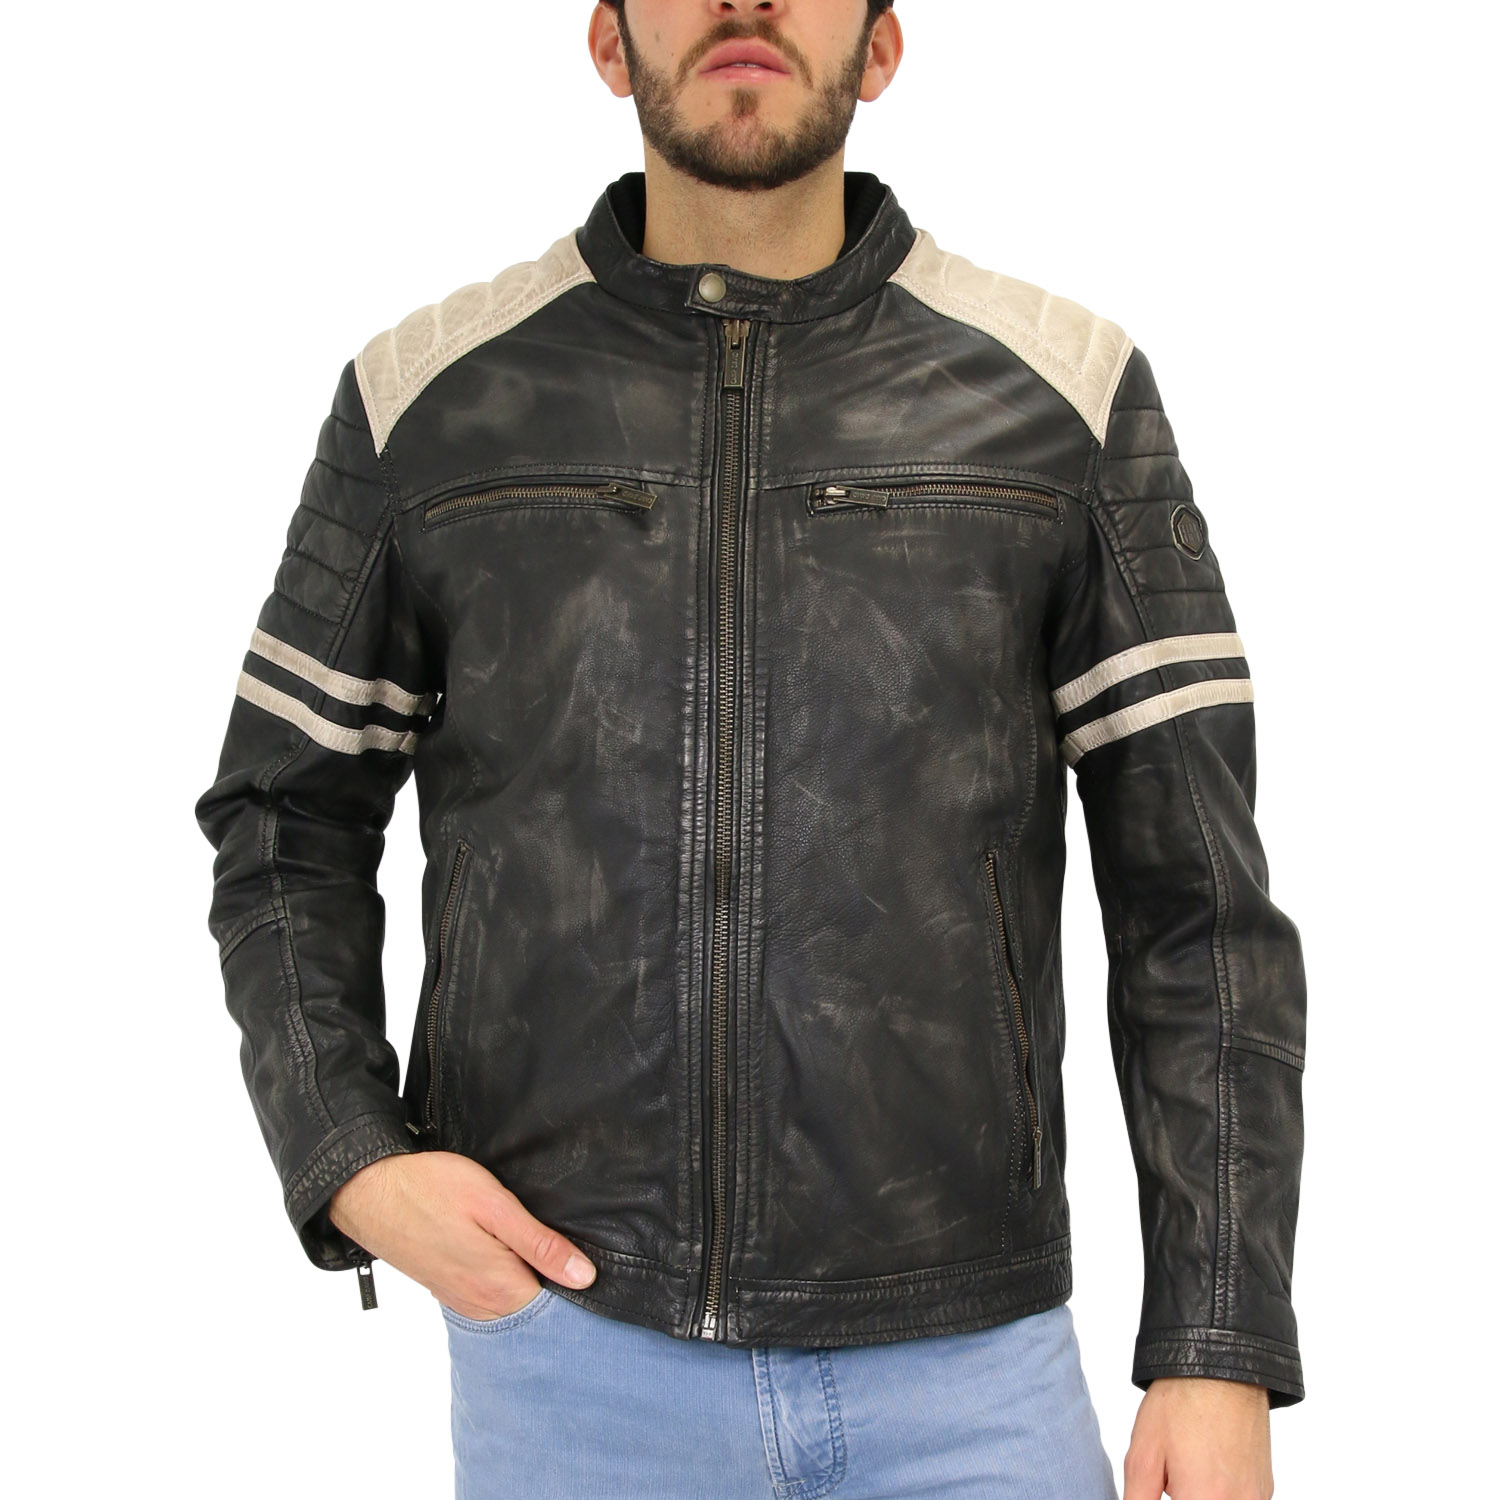 camp david leather jacket jacke lederjacke bikerjacke herren schwarz. Black Bedroom Furniture Sets. Home Design Ideas